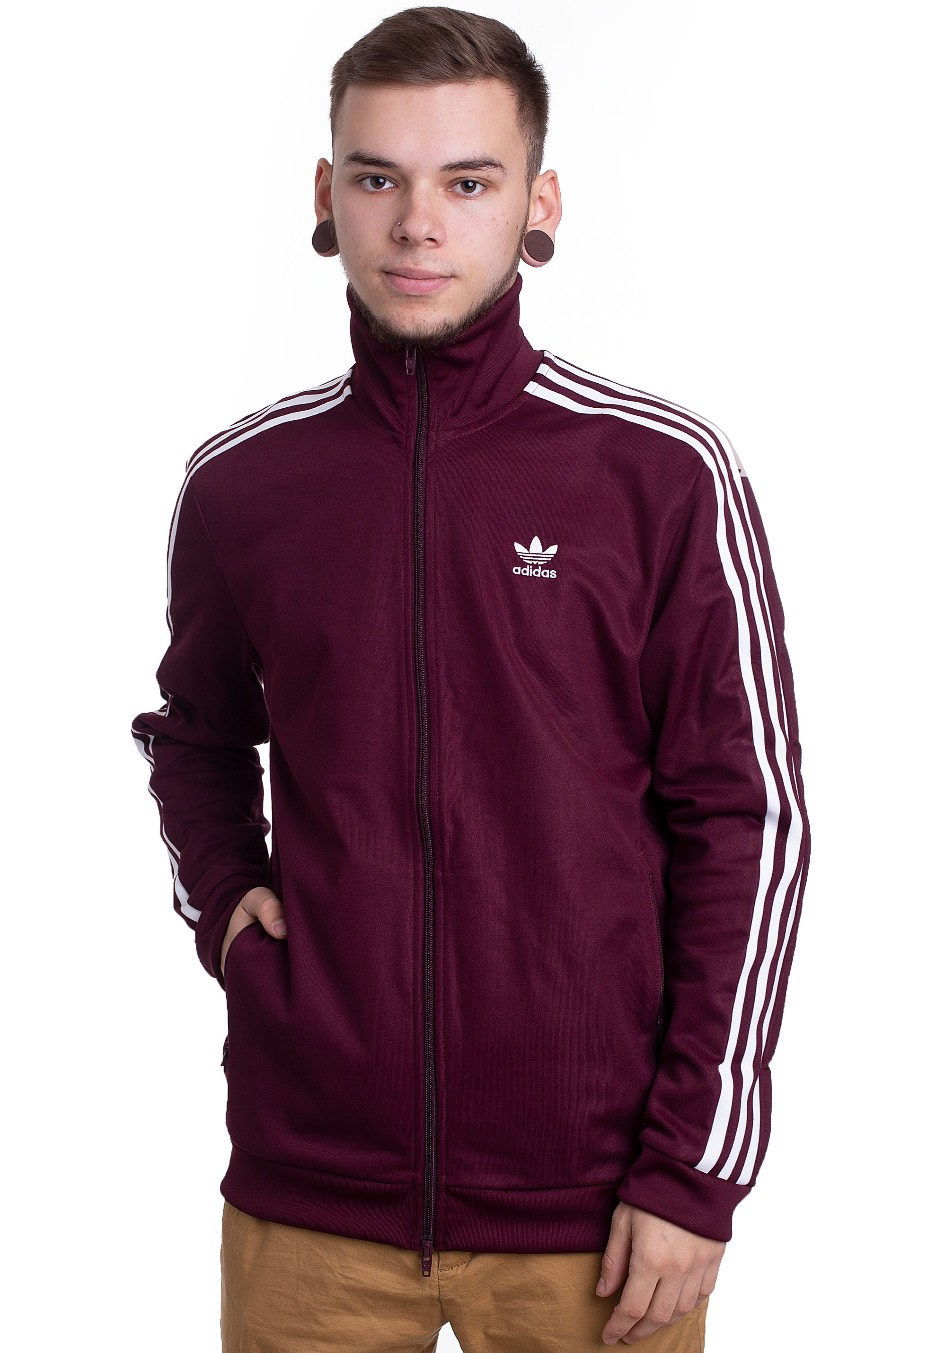 official photos 8fef3 12fc5 Adidas - Beckenbauer Maroon - Track Jacket - Streetwear Shop -  Impericon.com UK